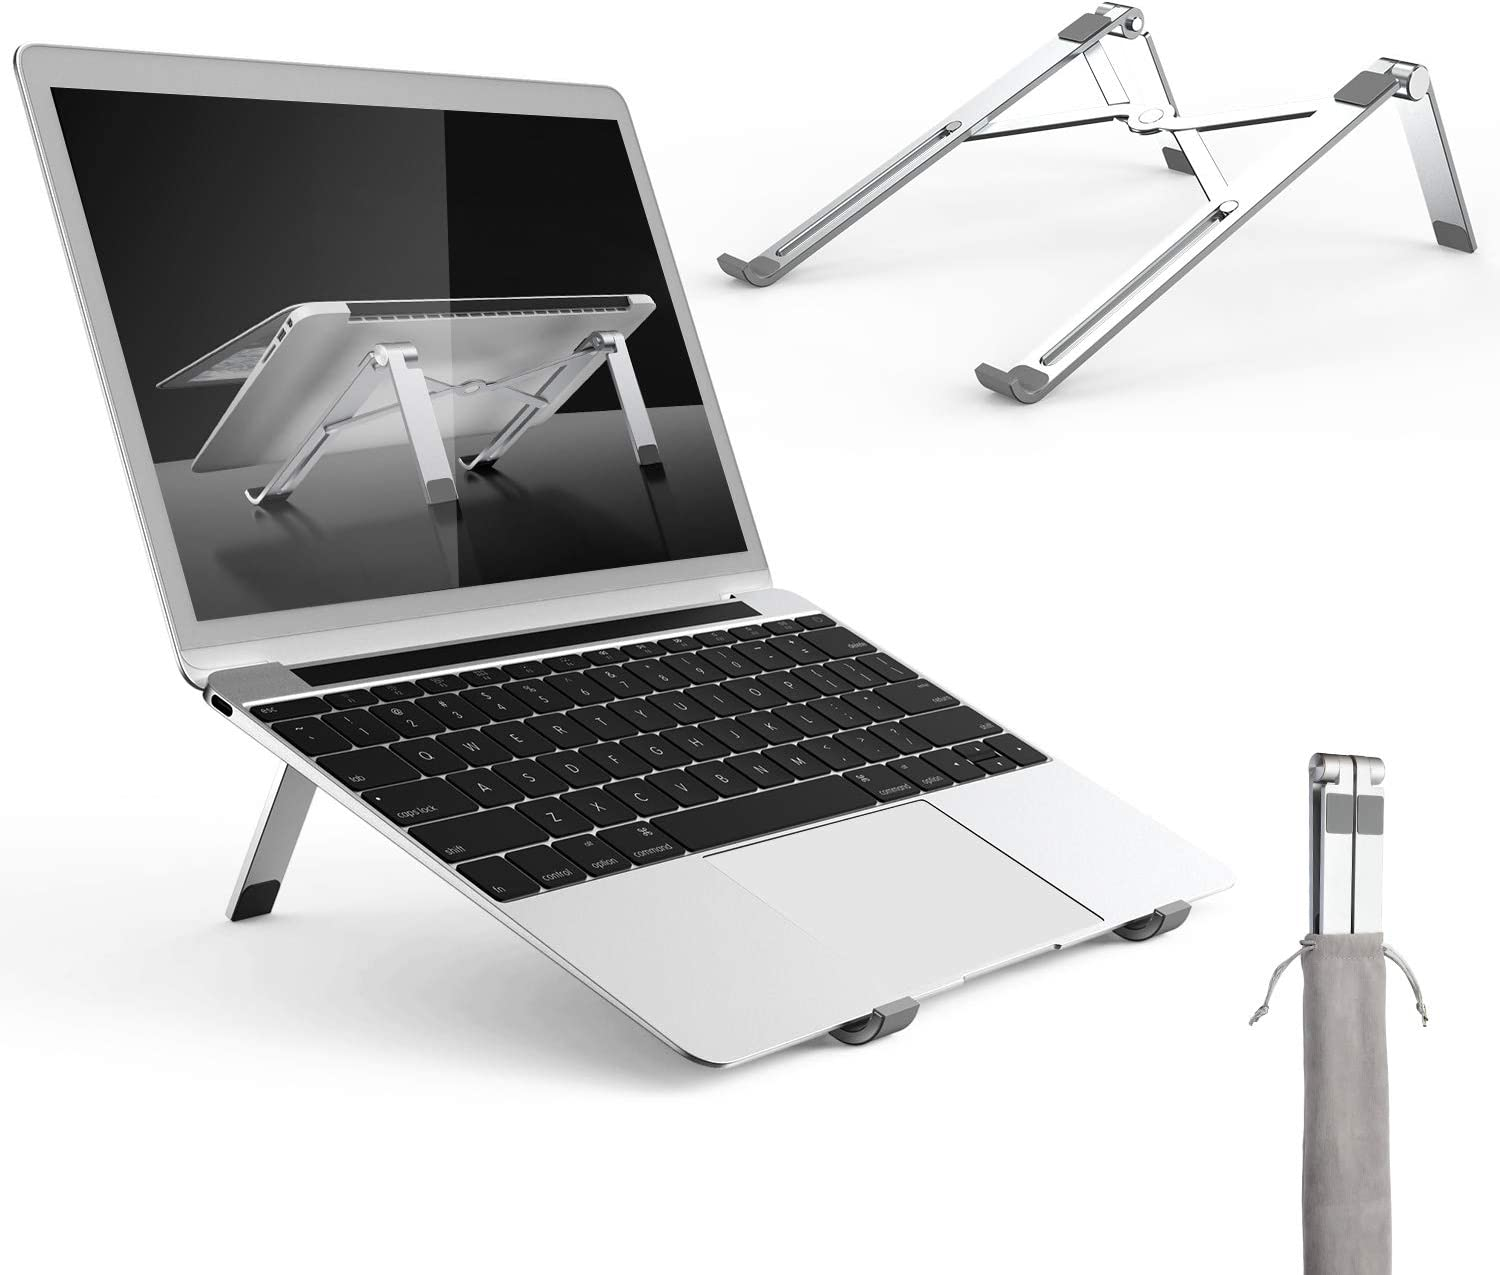 Adjustable Laptop Stand, Portable Aluminum Notebook Holder Riser Foldable Desktop MacBook Stand Compatible with Notebook, HP, Dell, IBM, iPad Tablet